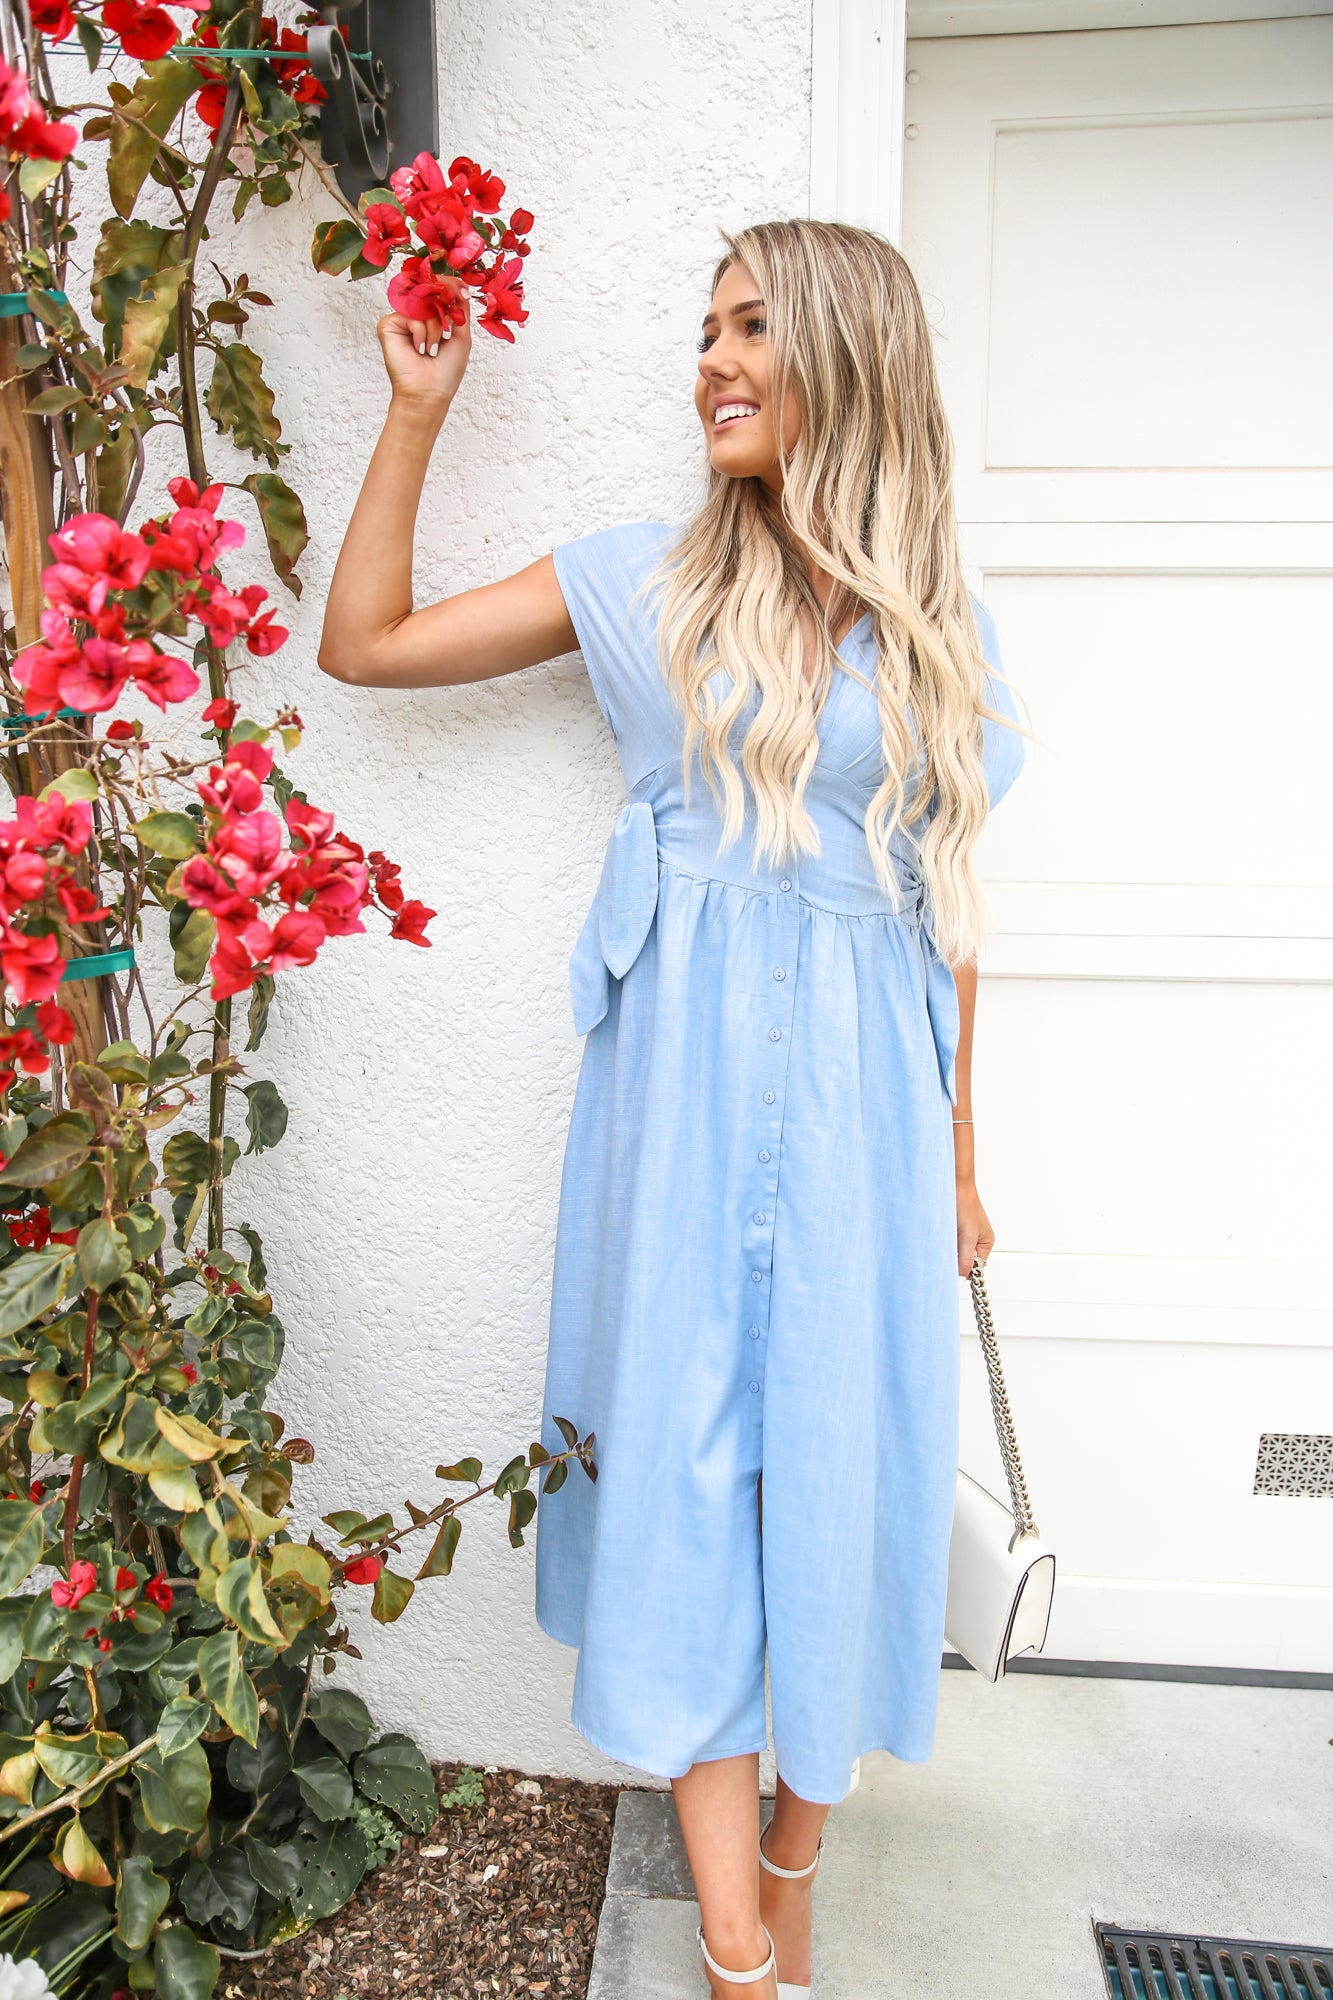 Ocean Blue Side Tie Midi Dress - llacie